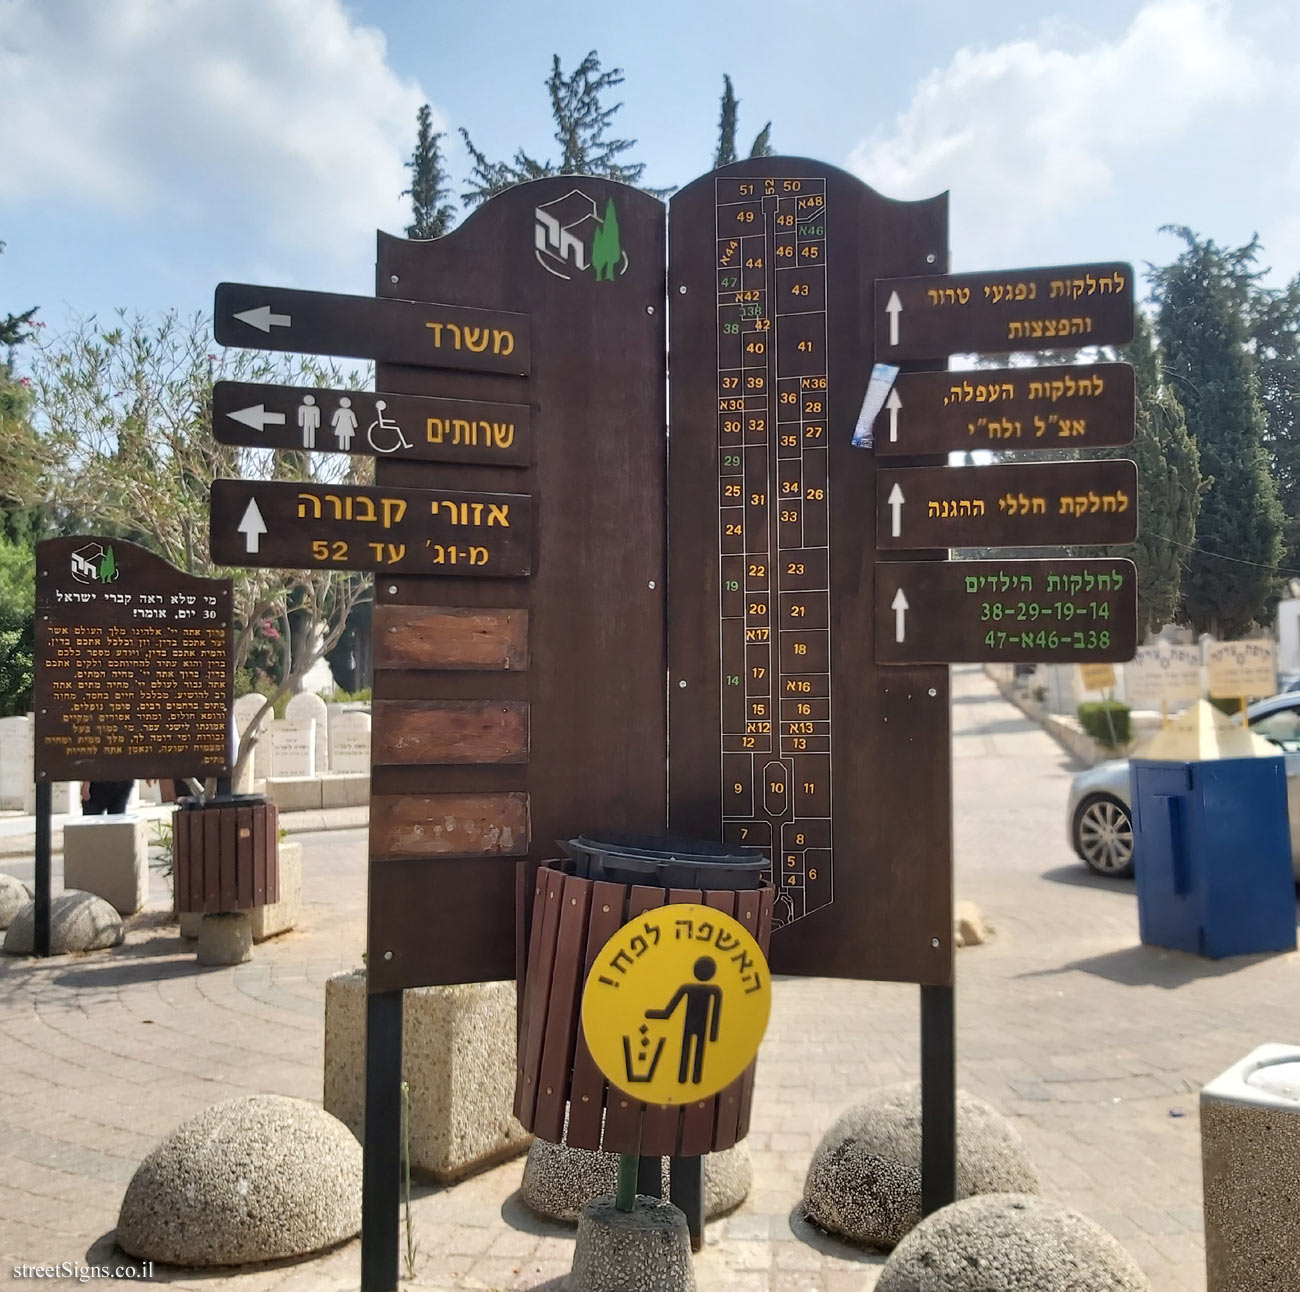 Nahalat Yitzhak Cemetery - direction sign and map